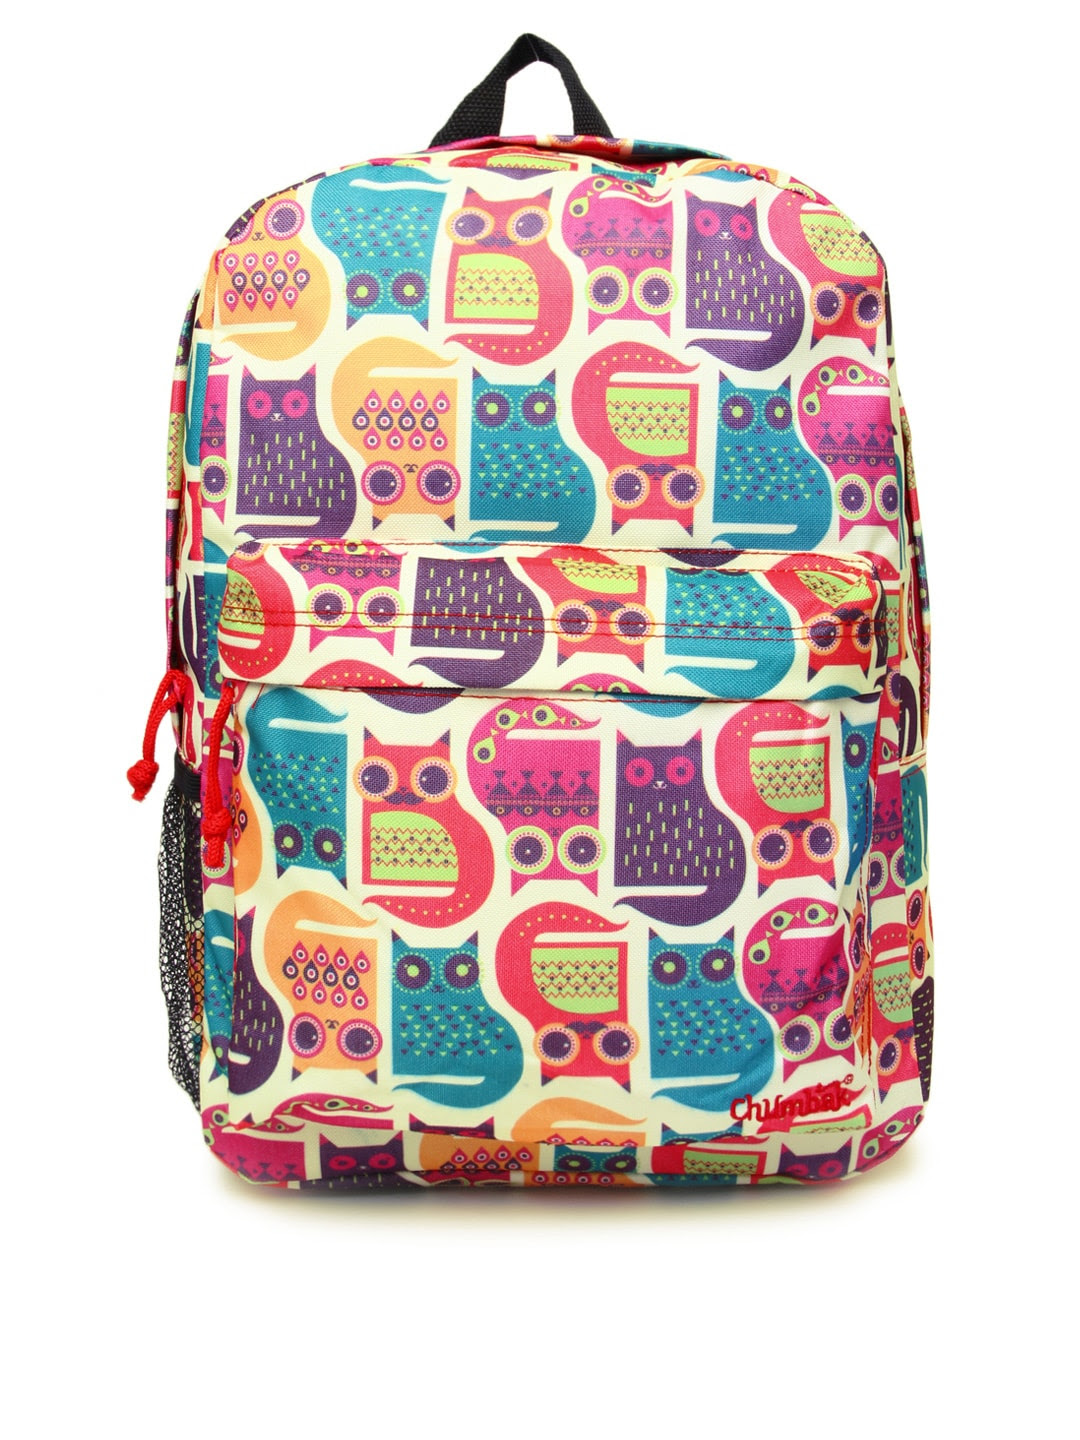 Chumbak Women Backpacks_c3e2629b9c2b62710c67c6c34bd89d6e_images